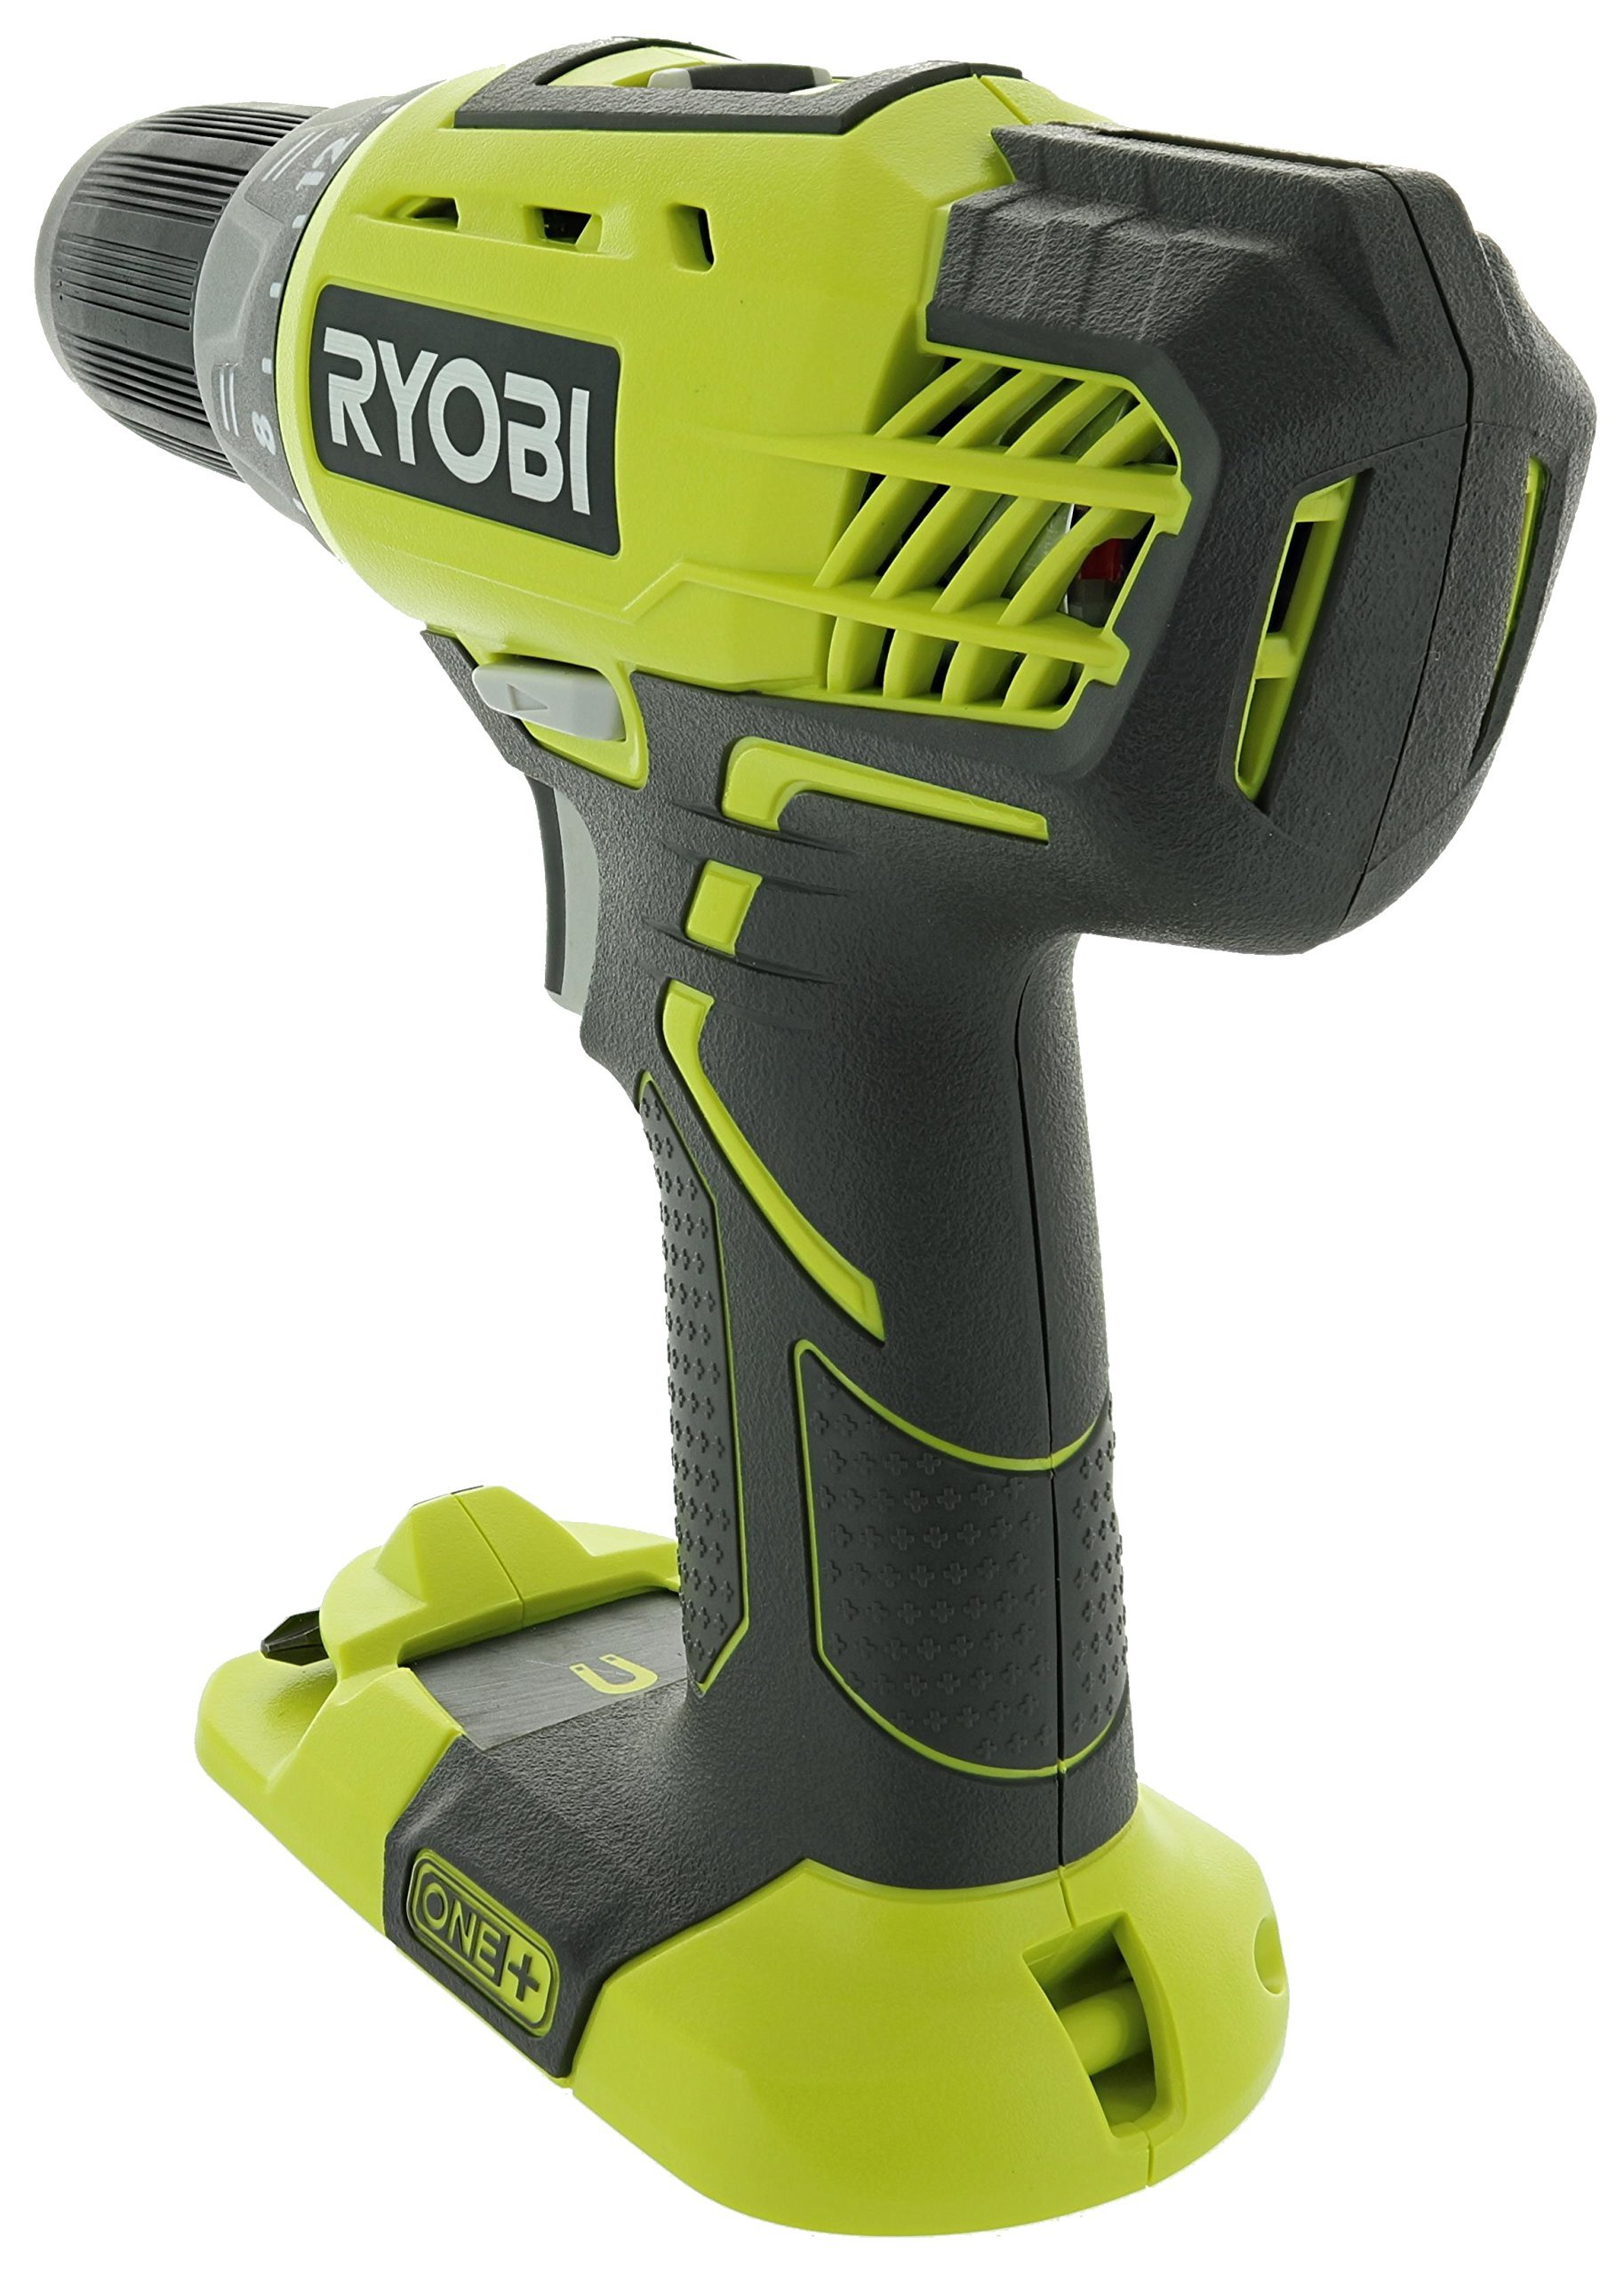 Ryobi P208 One+ 18V Lithium Ion Drill / Driver with 1/2 Inch Keyless Chuck (Batteries Not Included, Power Tool Only) (Certified Refurbished) by Ryobi (Image #4)